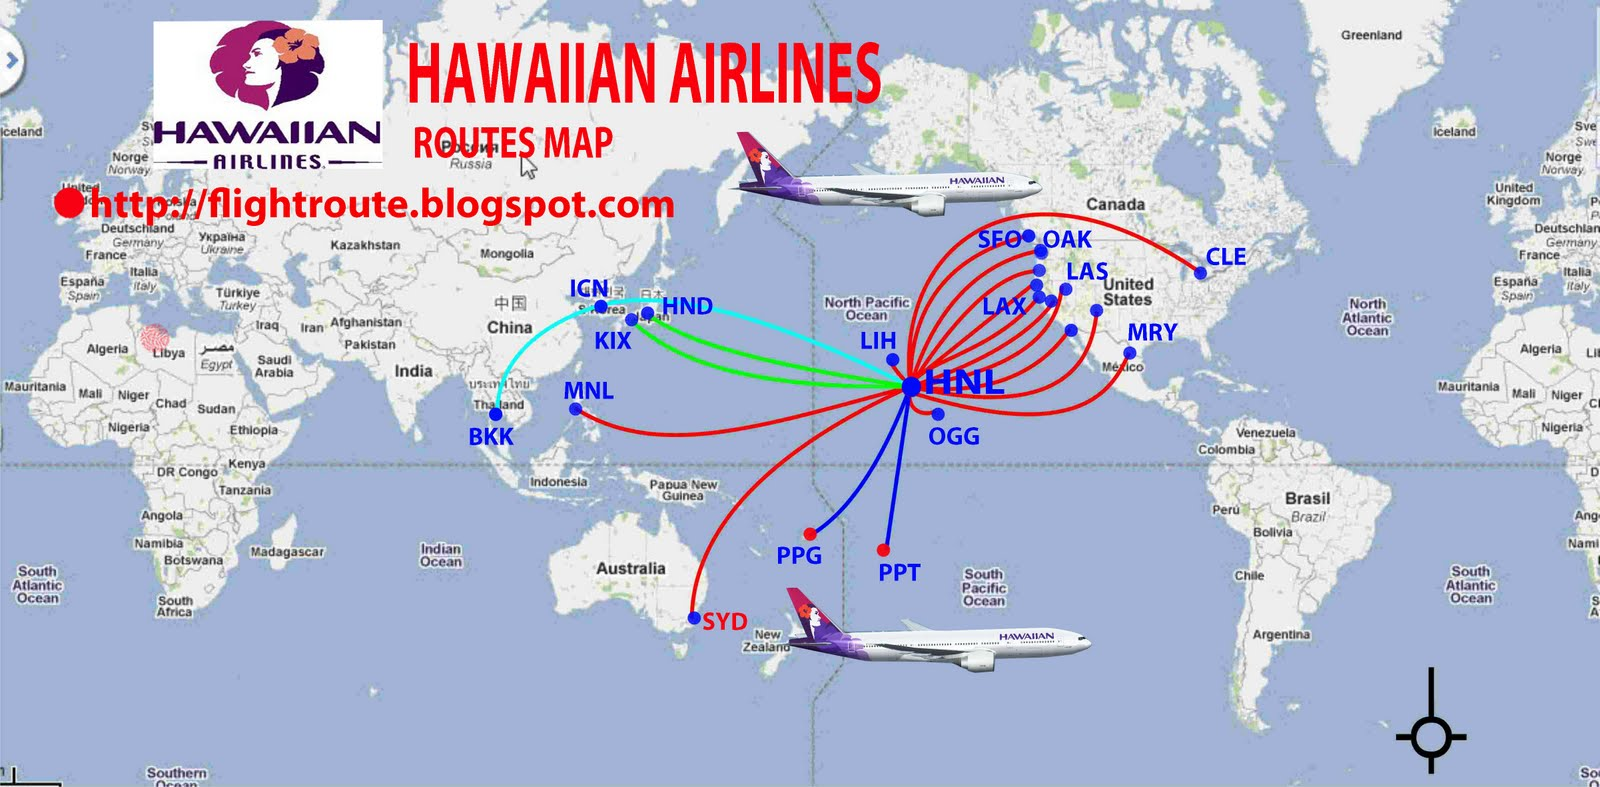 Hawaiian airlines routes map design plane hawaiian airlines routes map gumiabroncs Gallery